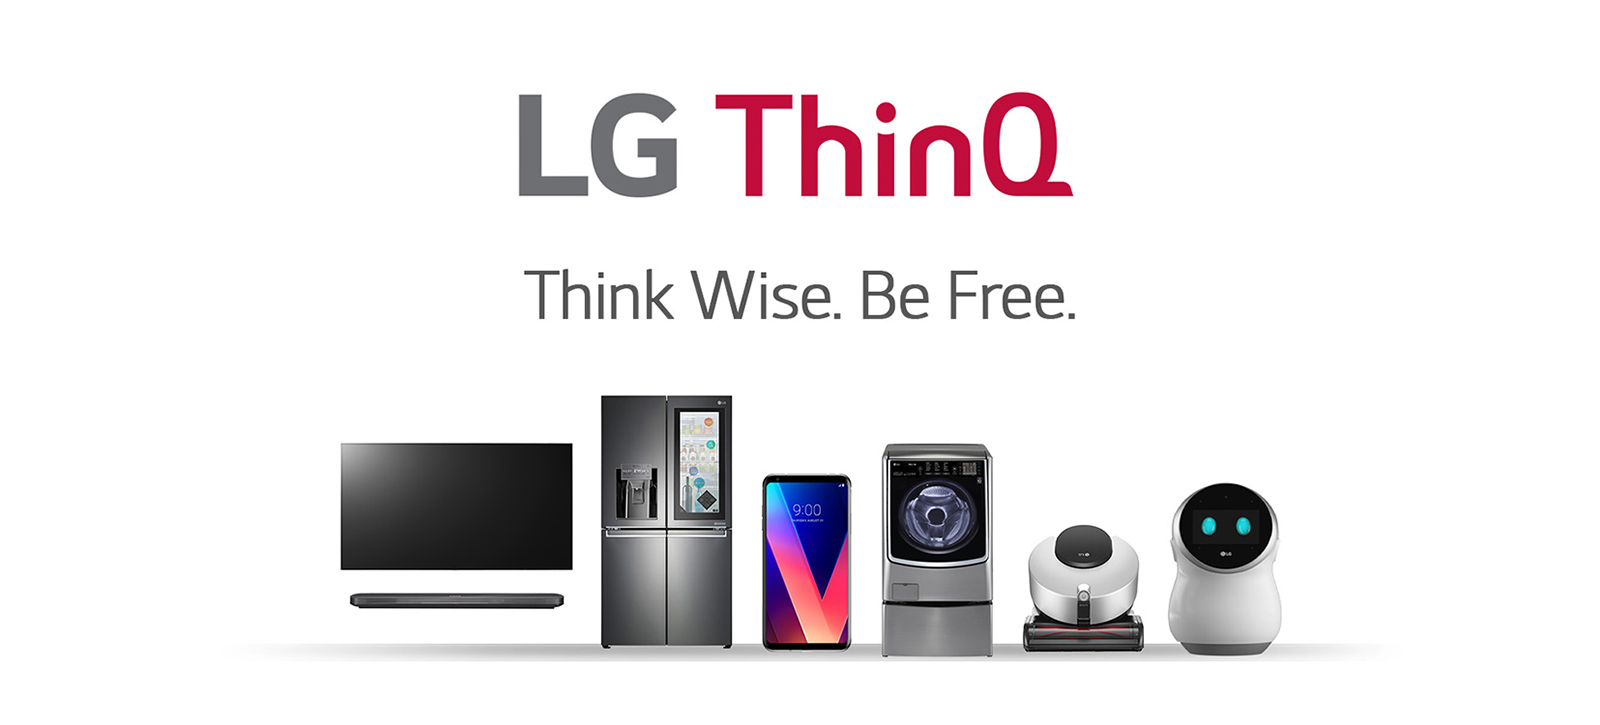 Banner image of LG ThinQ's product line